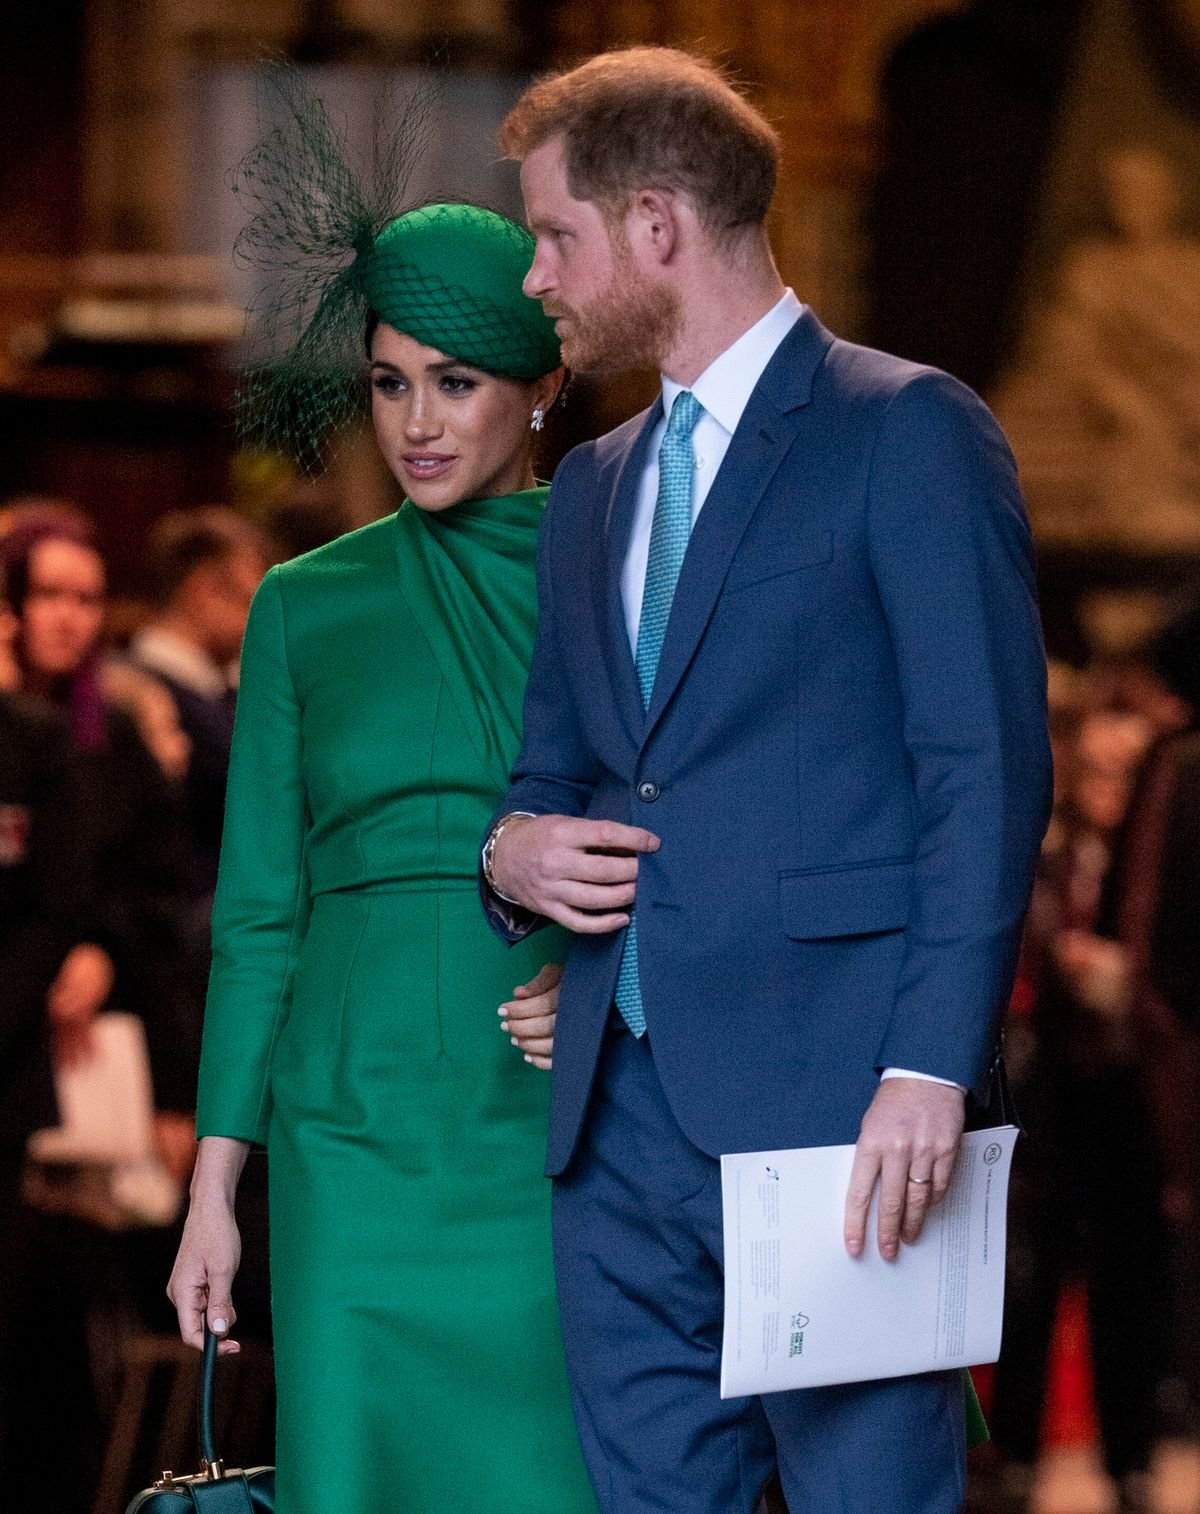 Duchess Meghan and Prince Harry at the Commonwealth Day Service held at Westminster Abbey on March 9, 2020, in London, England | Photo: Mark Cuthbert/UK Press/Getty Images